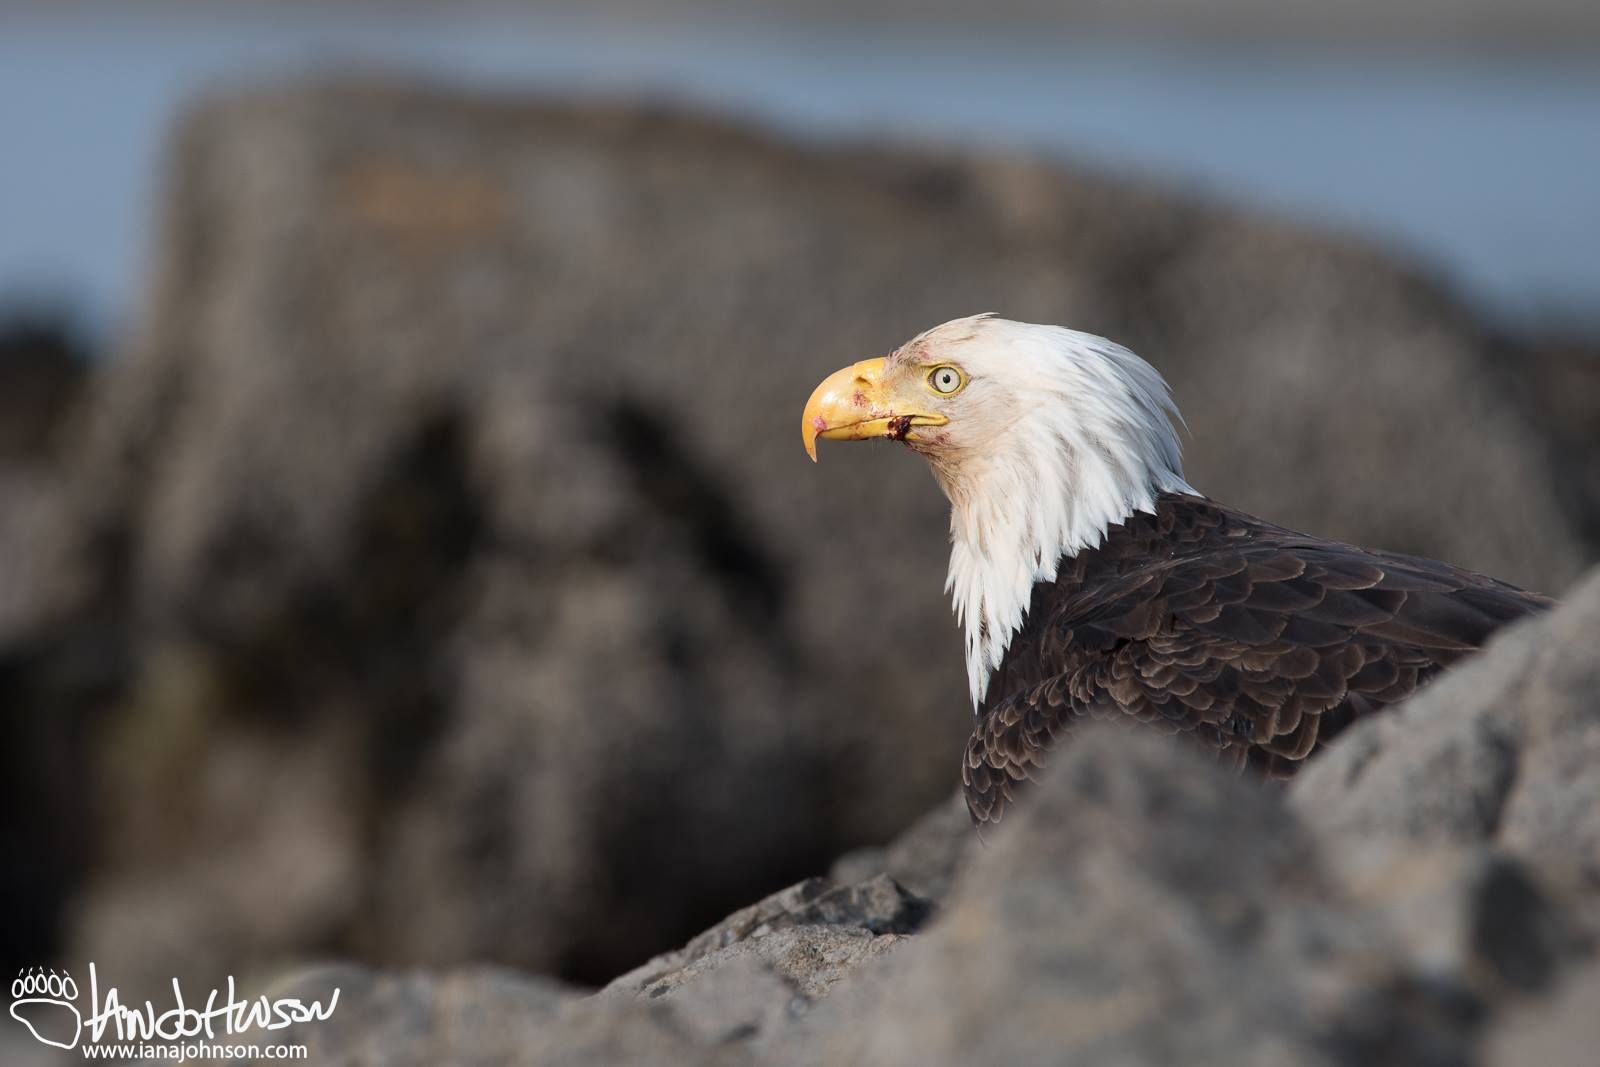 ALASKA HAS THE WORLD'S LARGEST POPULATION OF BREEDING PAIRS OF BALD EAGLES. LOOK FOR THESE BOLD FISH EATERS HIGH IN THE OLD GROWTH TREES ALONG RIVERS AND STREAMS ON PRINCE OF WALES ISLAND. IMAGE:COURTESY OF ©IAN A. JOHNSON, WILDLIFE PHOTOGRAPHY